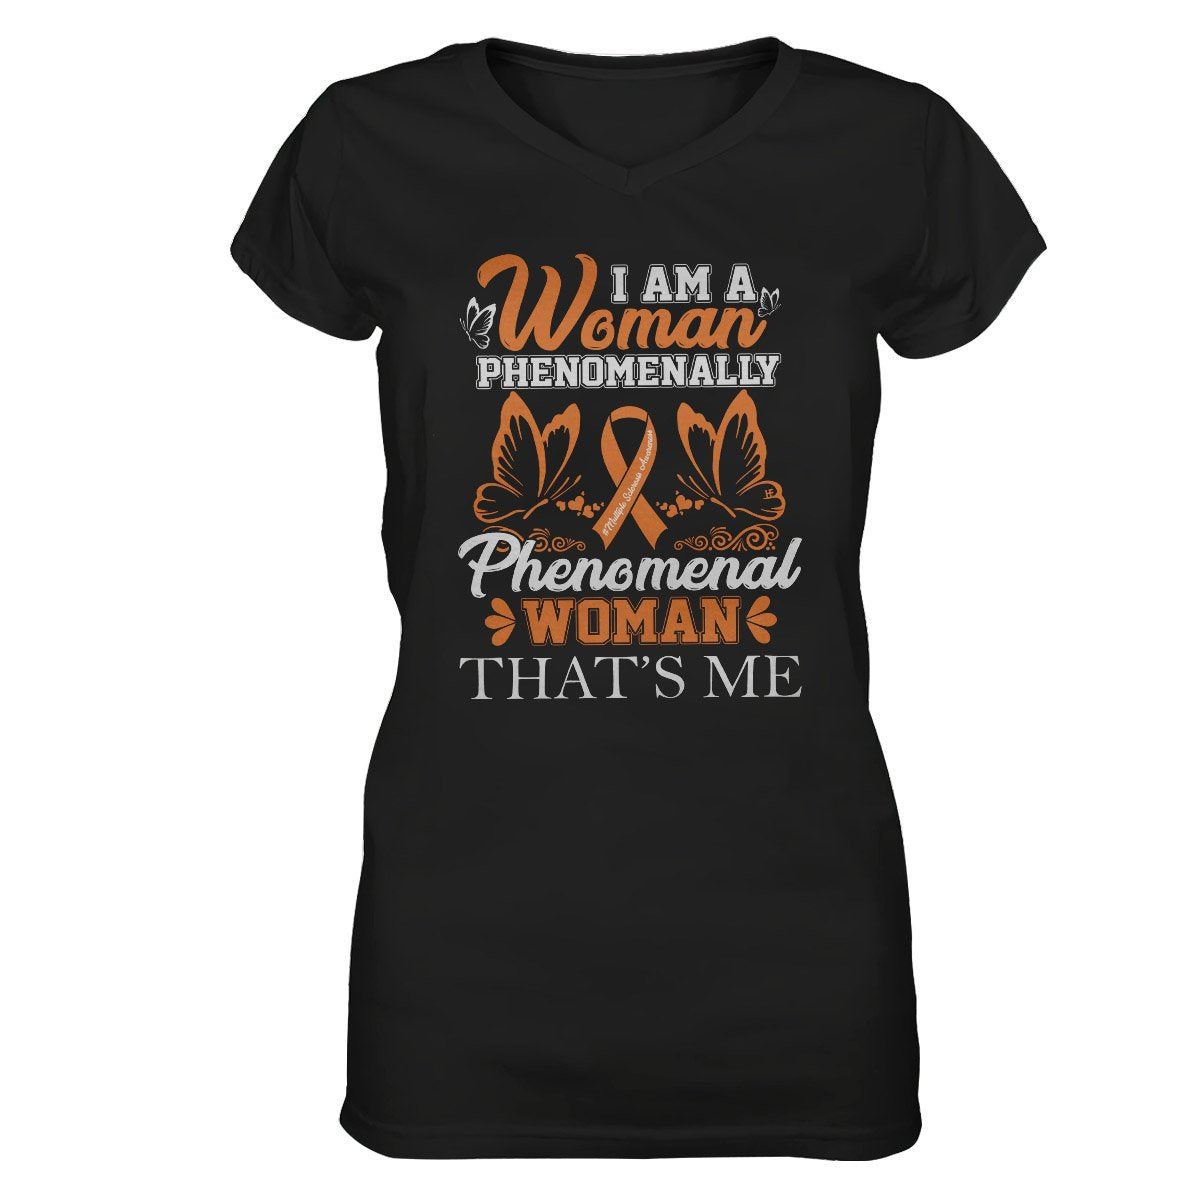 I Am A Phenomenal Woman Women V-neck T-shirt, MS Awareness Shirt, Multiple Sclerosis Awareness Gifts